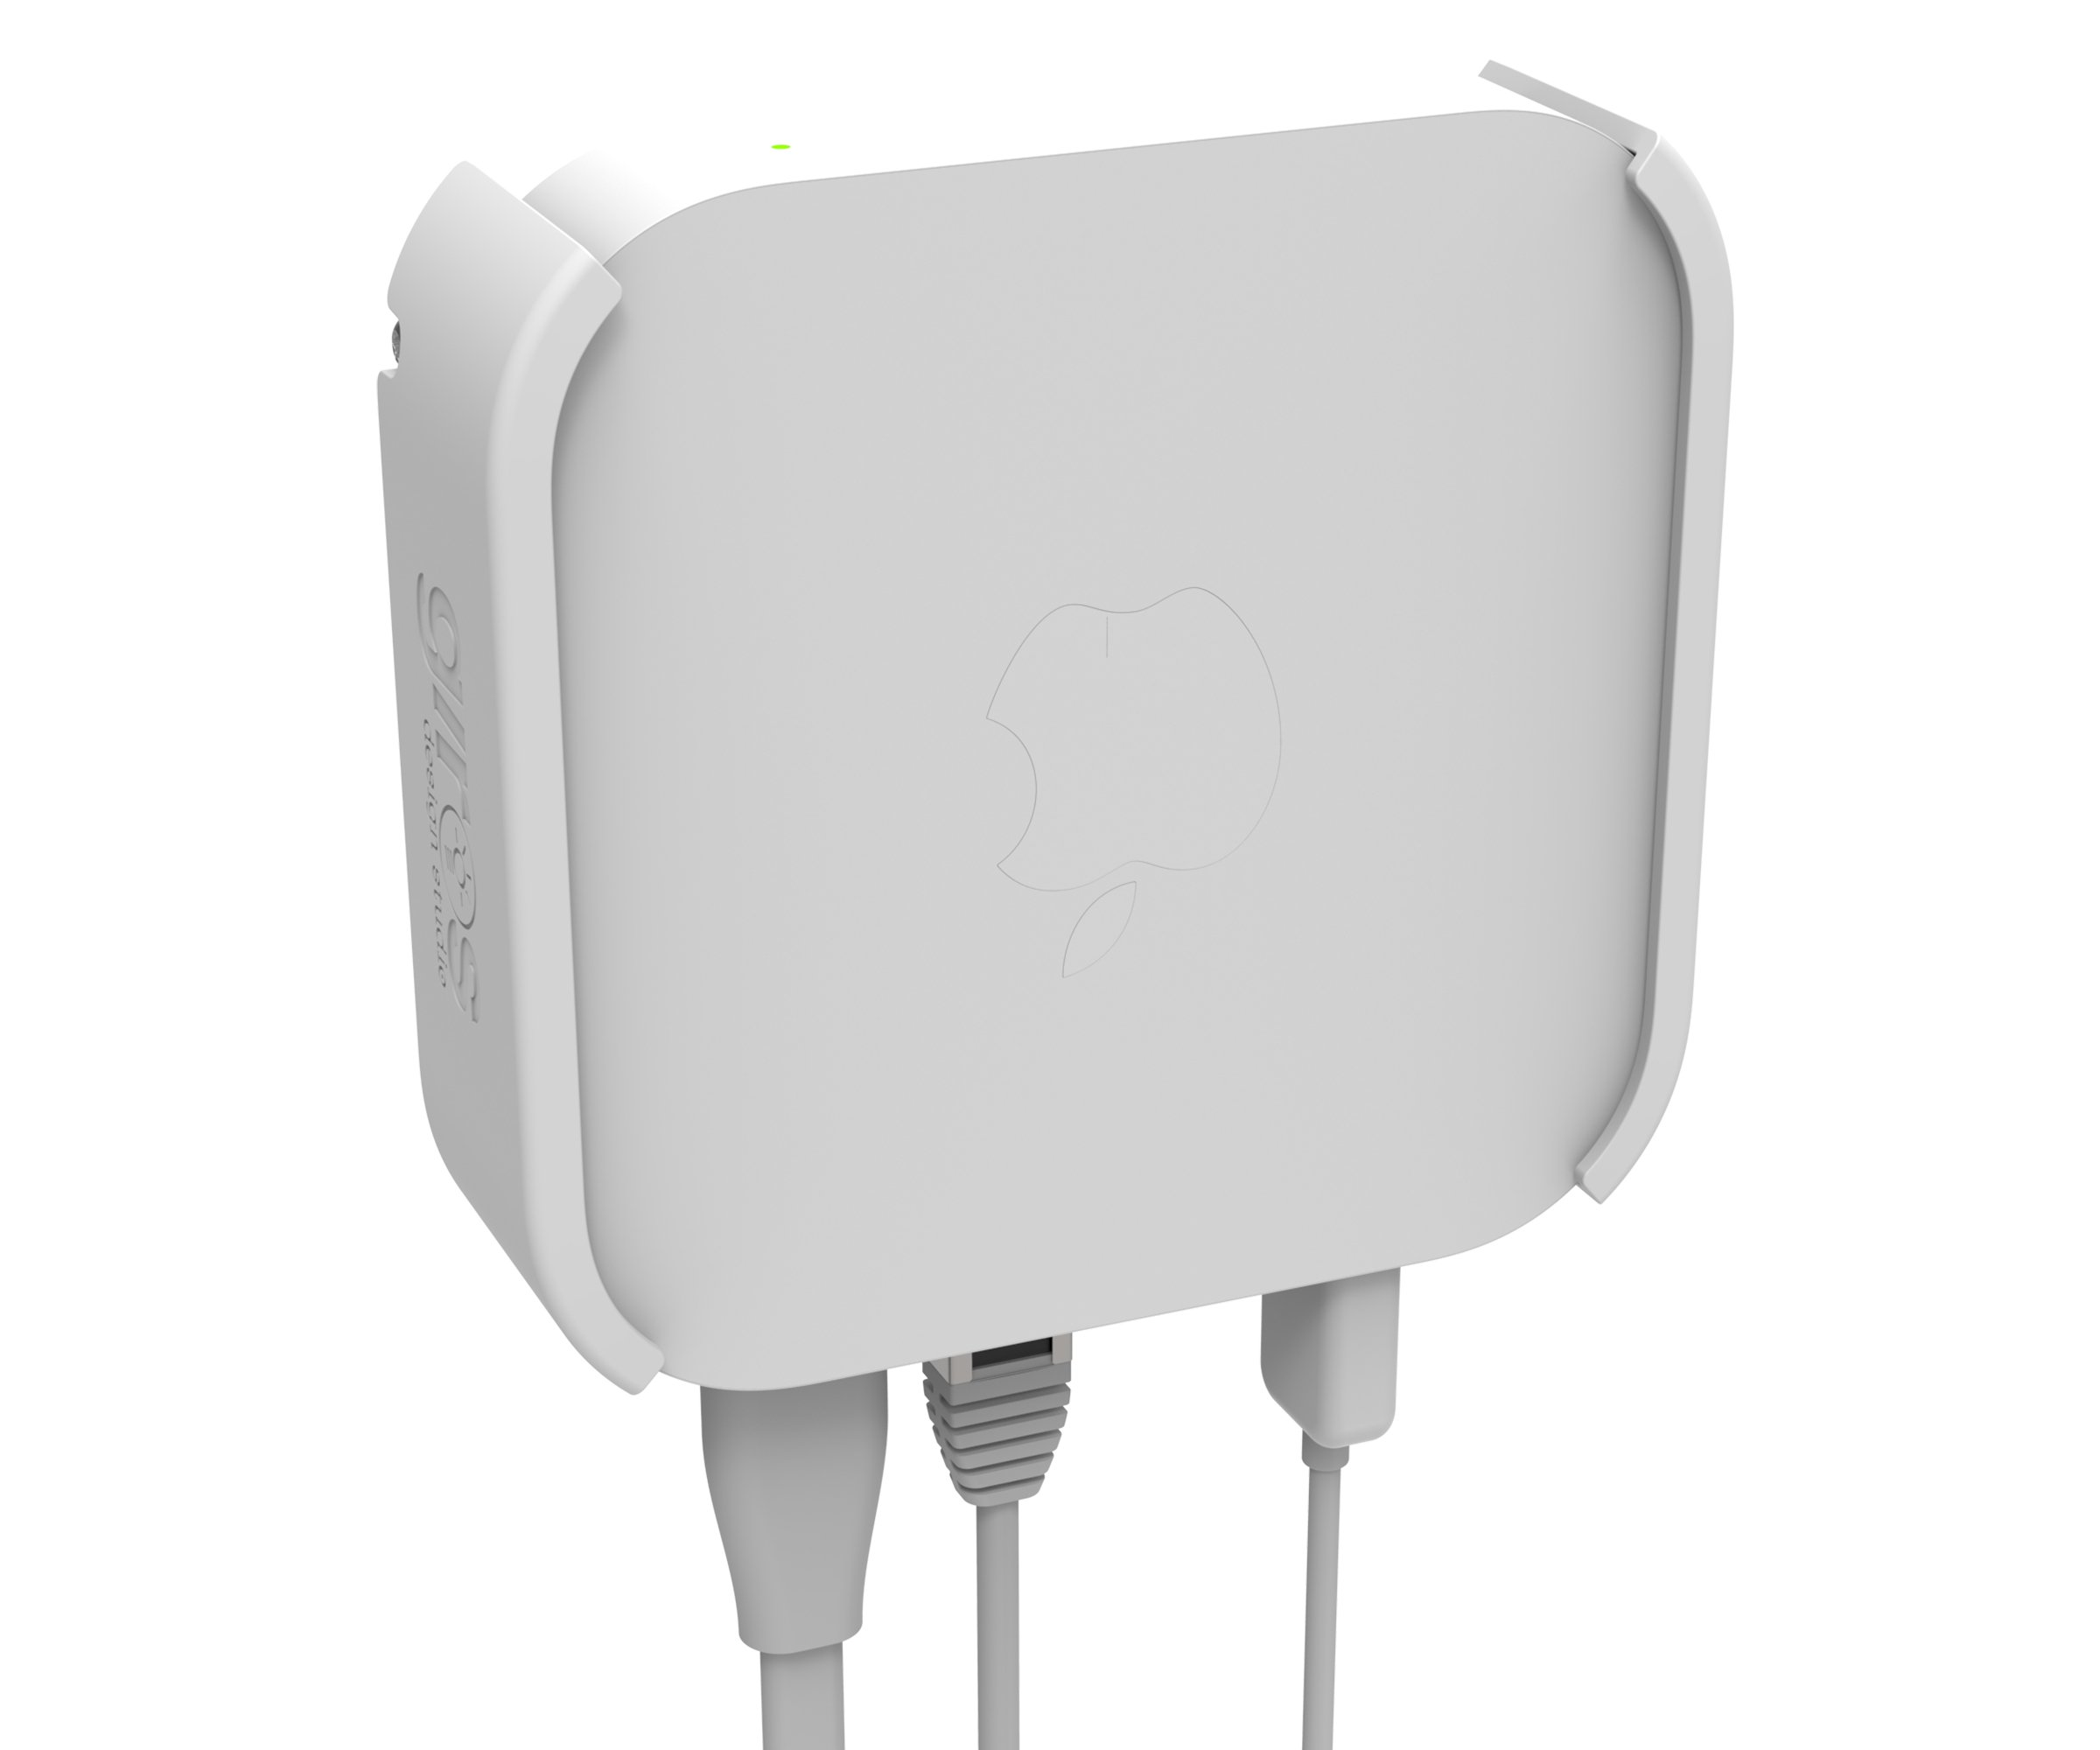 AirLock - Wall/Ceiling Mount for Apple AirPort Express